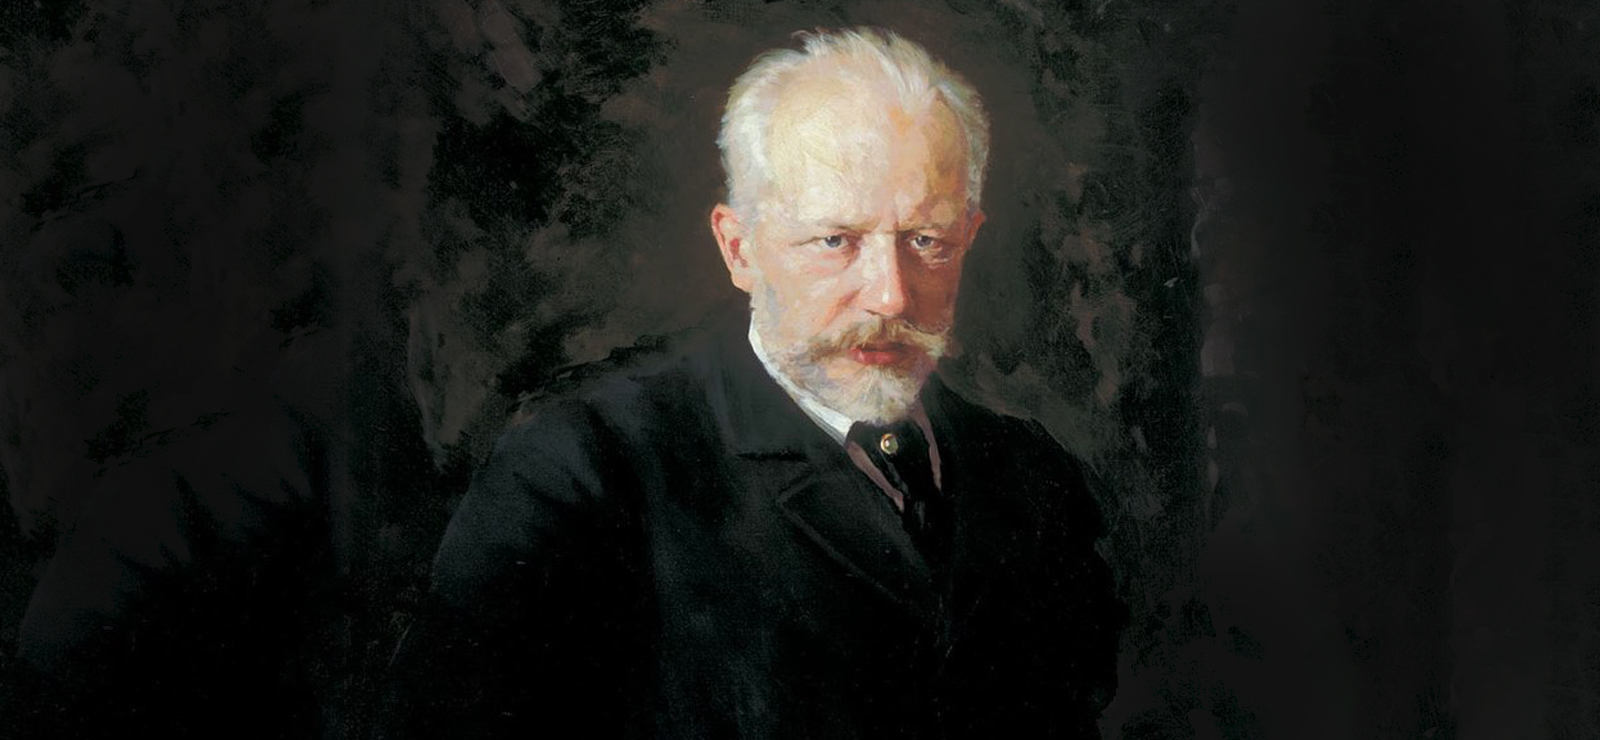 [Program Two: Amateurs and Professionals] Portrait of Pyotr Ilyich Tchaikovsky by Nikolai Kuznetsov; Wikimedia Commons